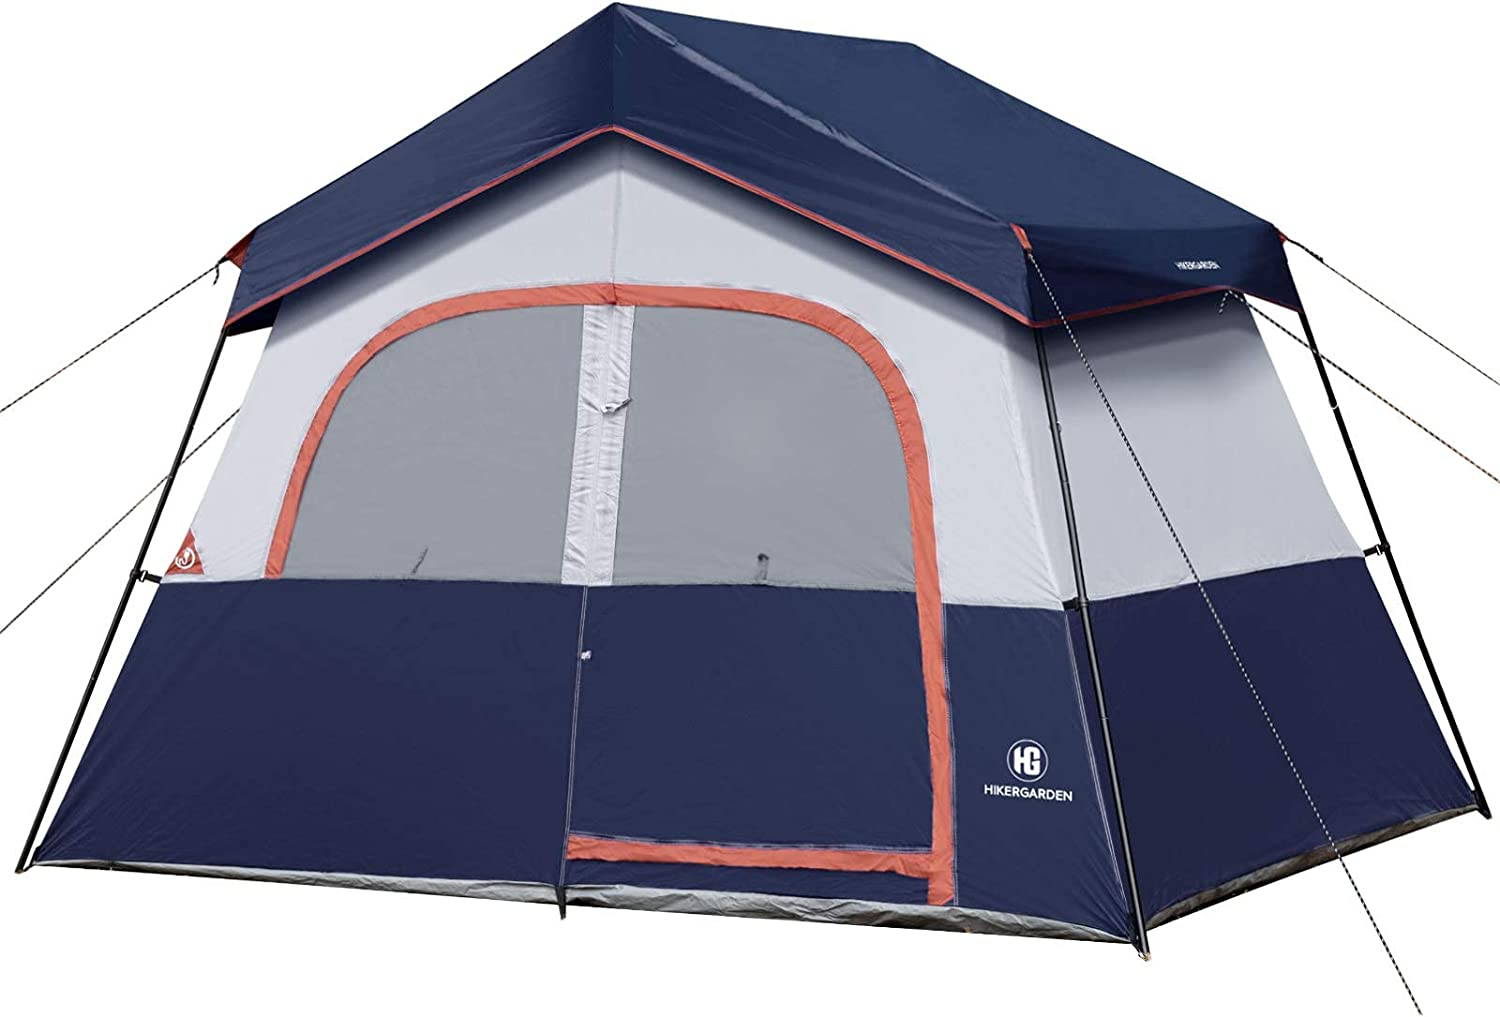 Oakland Mall Camping Tent - HIKERGARDEN Reinforced Superior 6 for Person